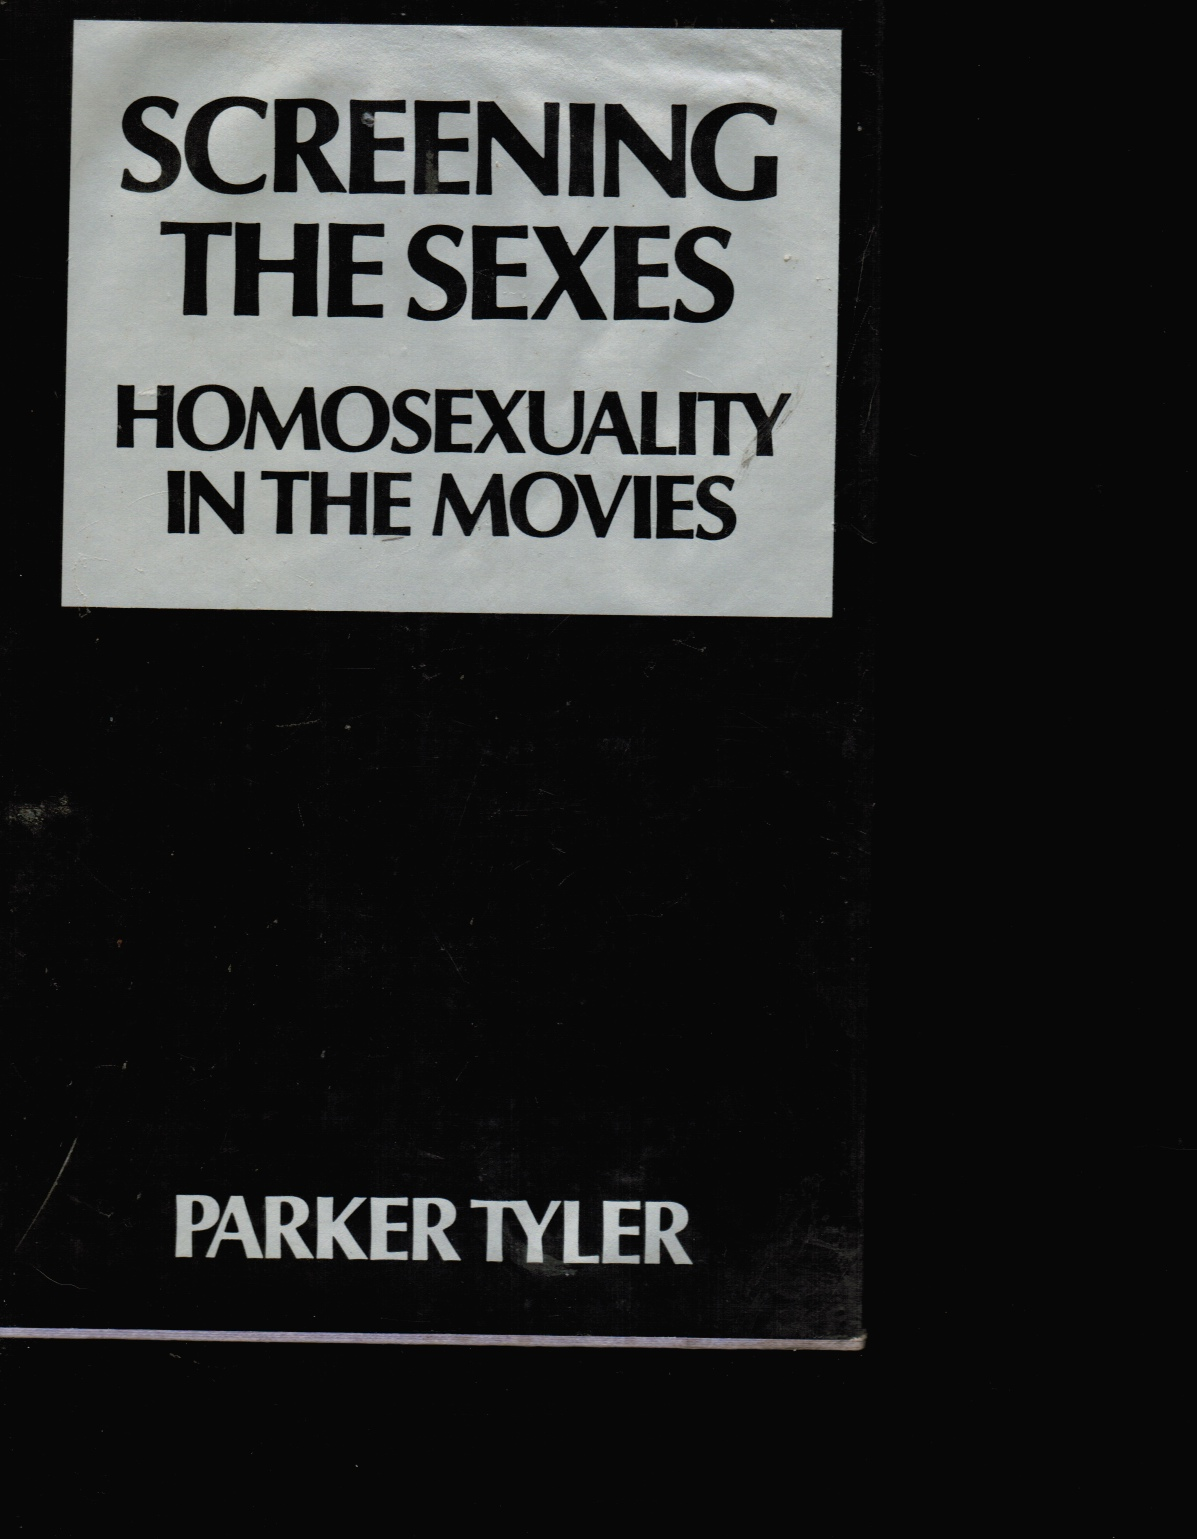 Screening the Sexes: Homosexuality in the Movies SEPARATE PHOTOGRAPH INCLUDED